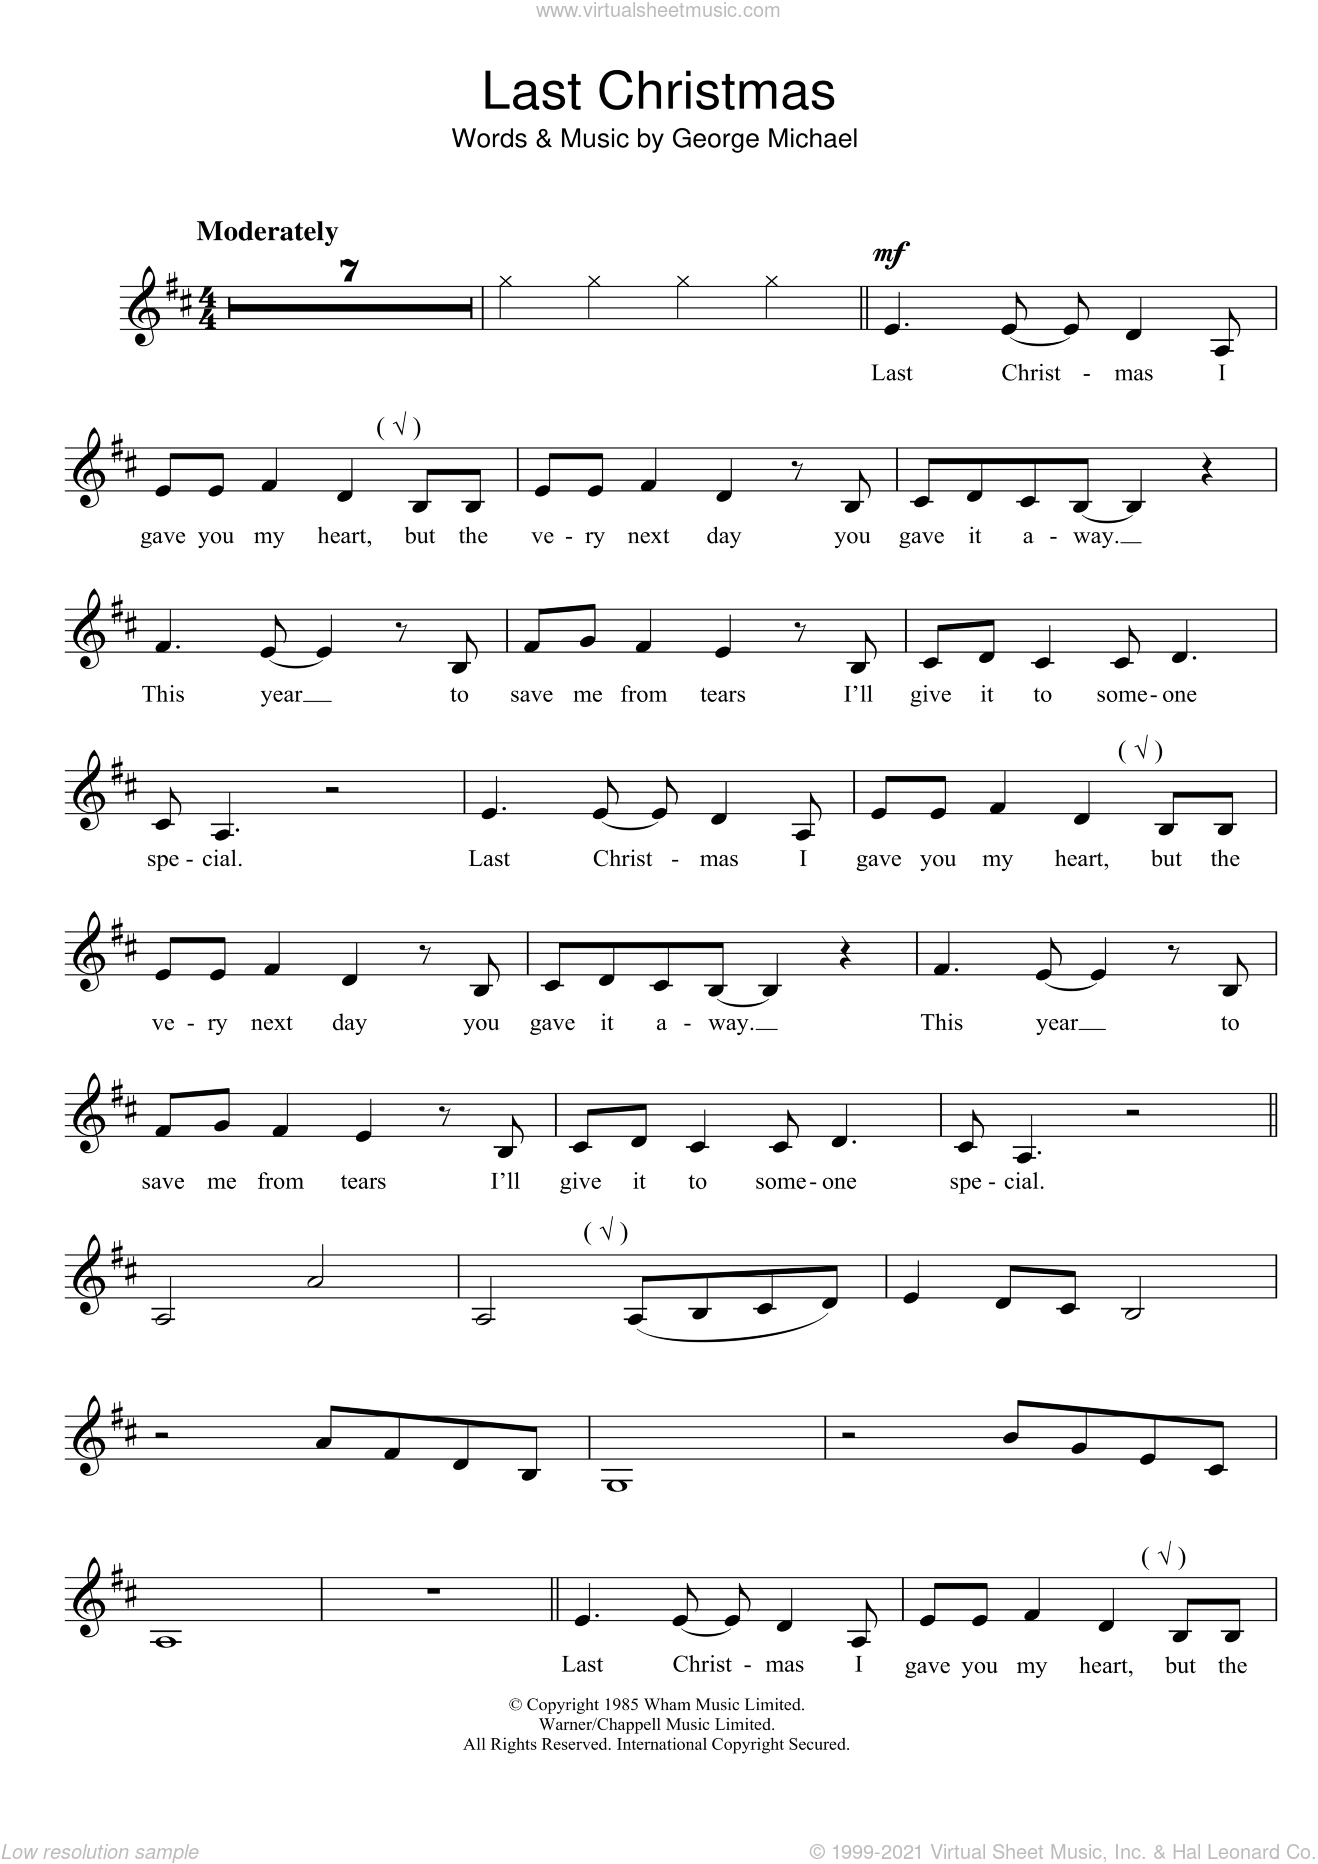 Last Christmas sheet music for clarinet